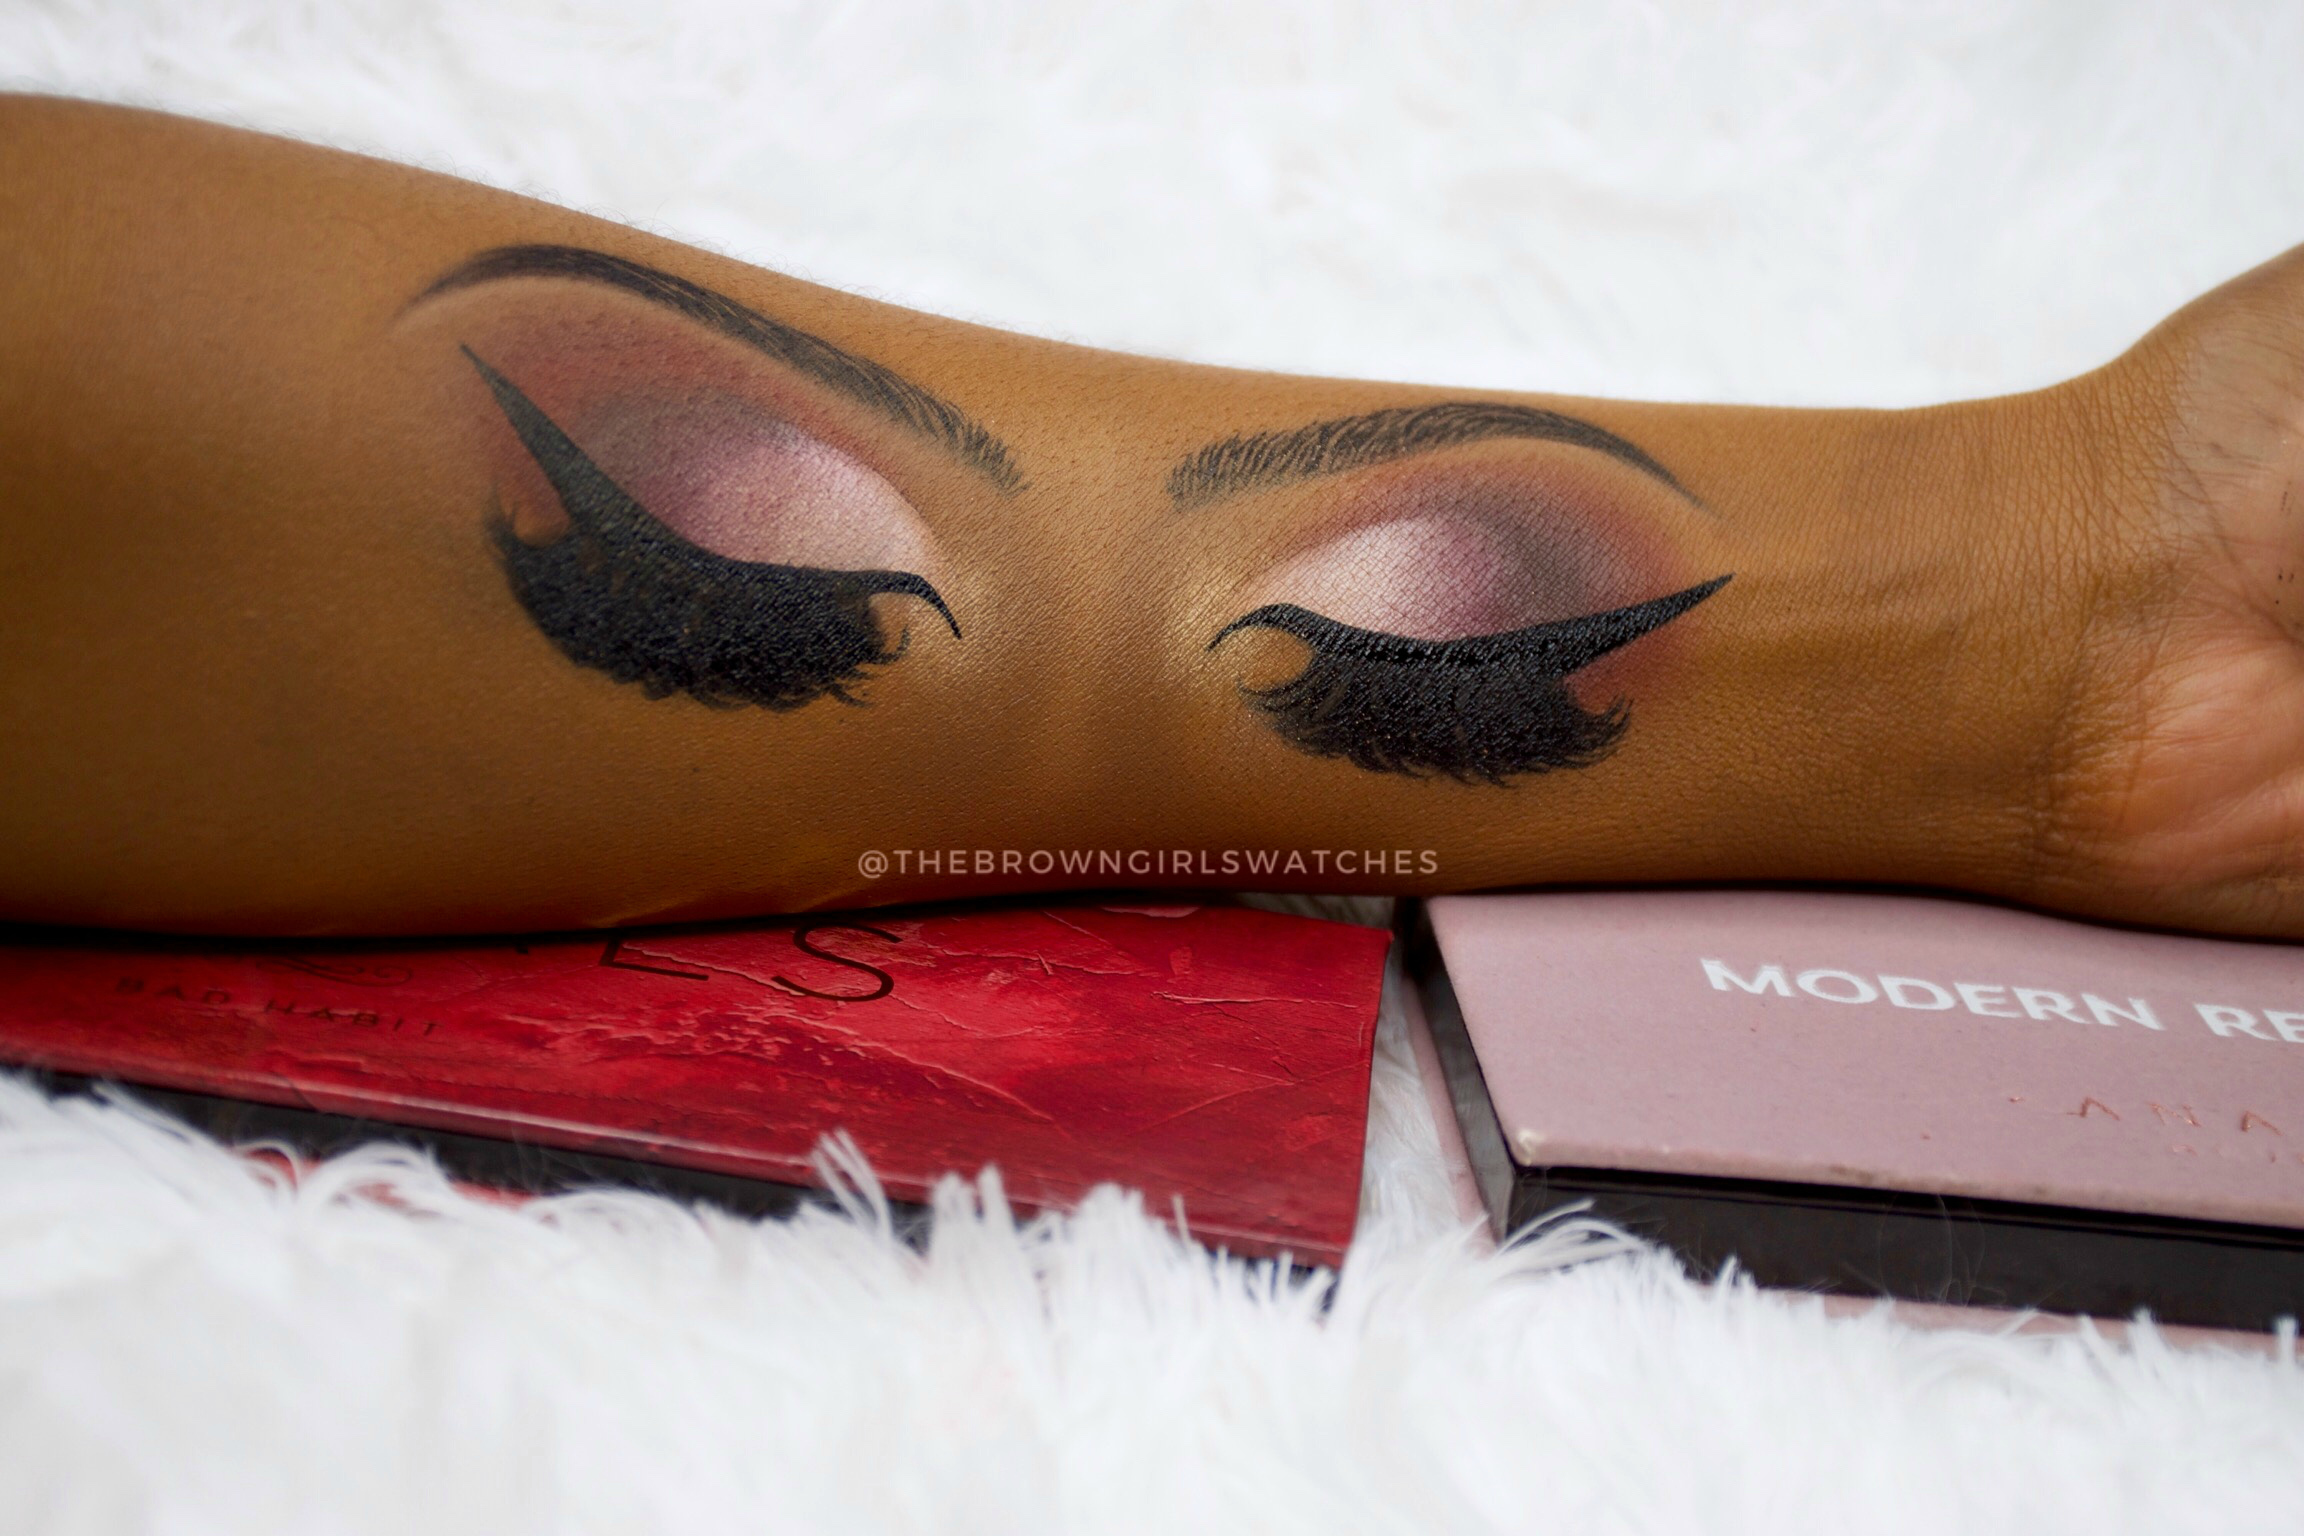 The Royals Palette Eye Shadow Look (on the left) and Modern Renaissance Eye Shadow Look (on the right).